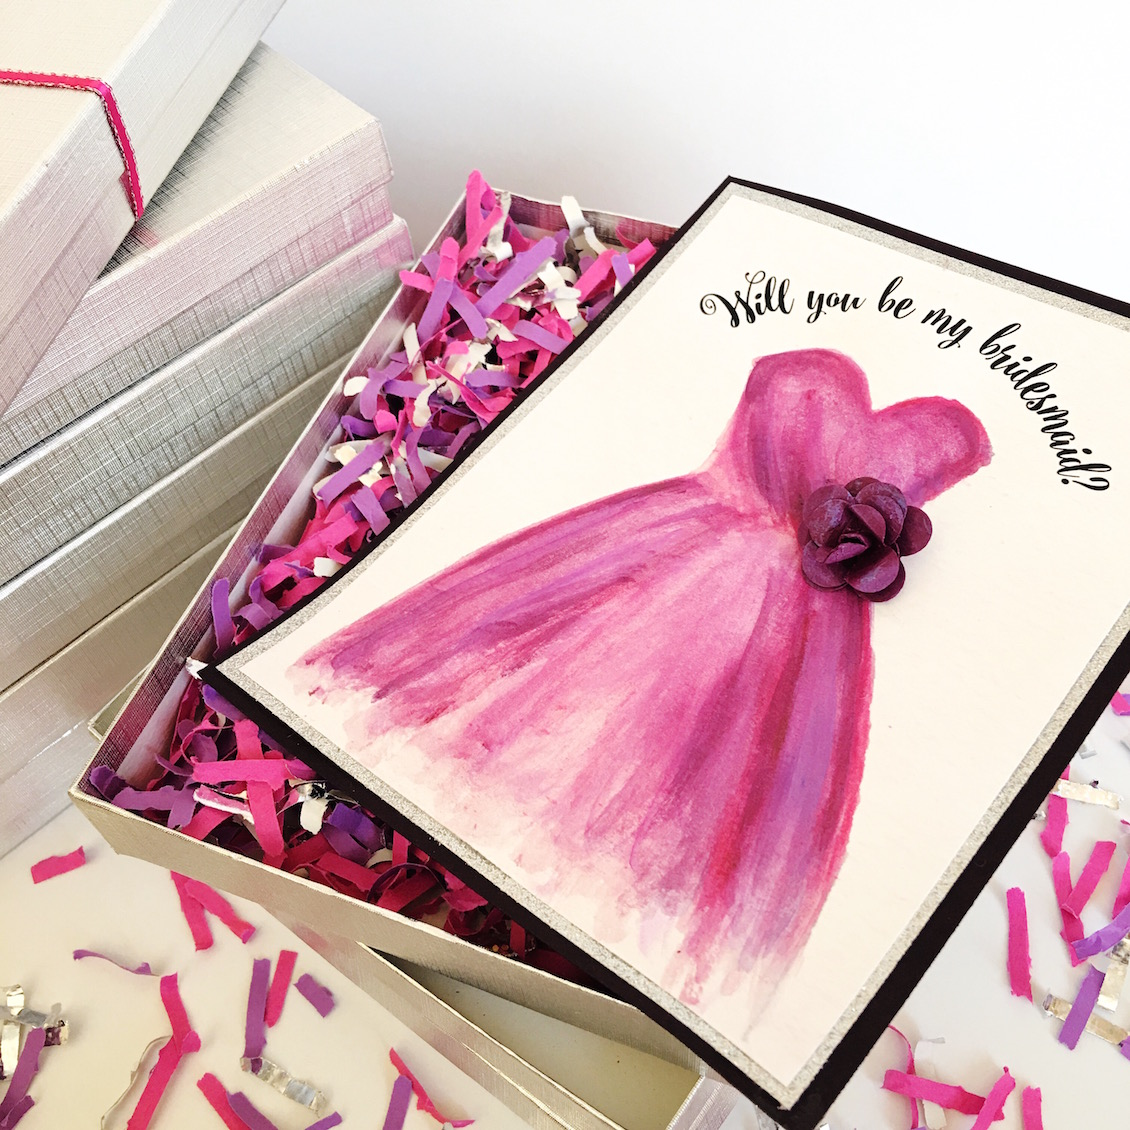 Win Handmade Will You Be My Bridesmaid Gift Box Card Sets with Confetti